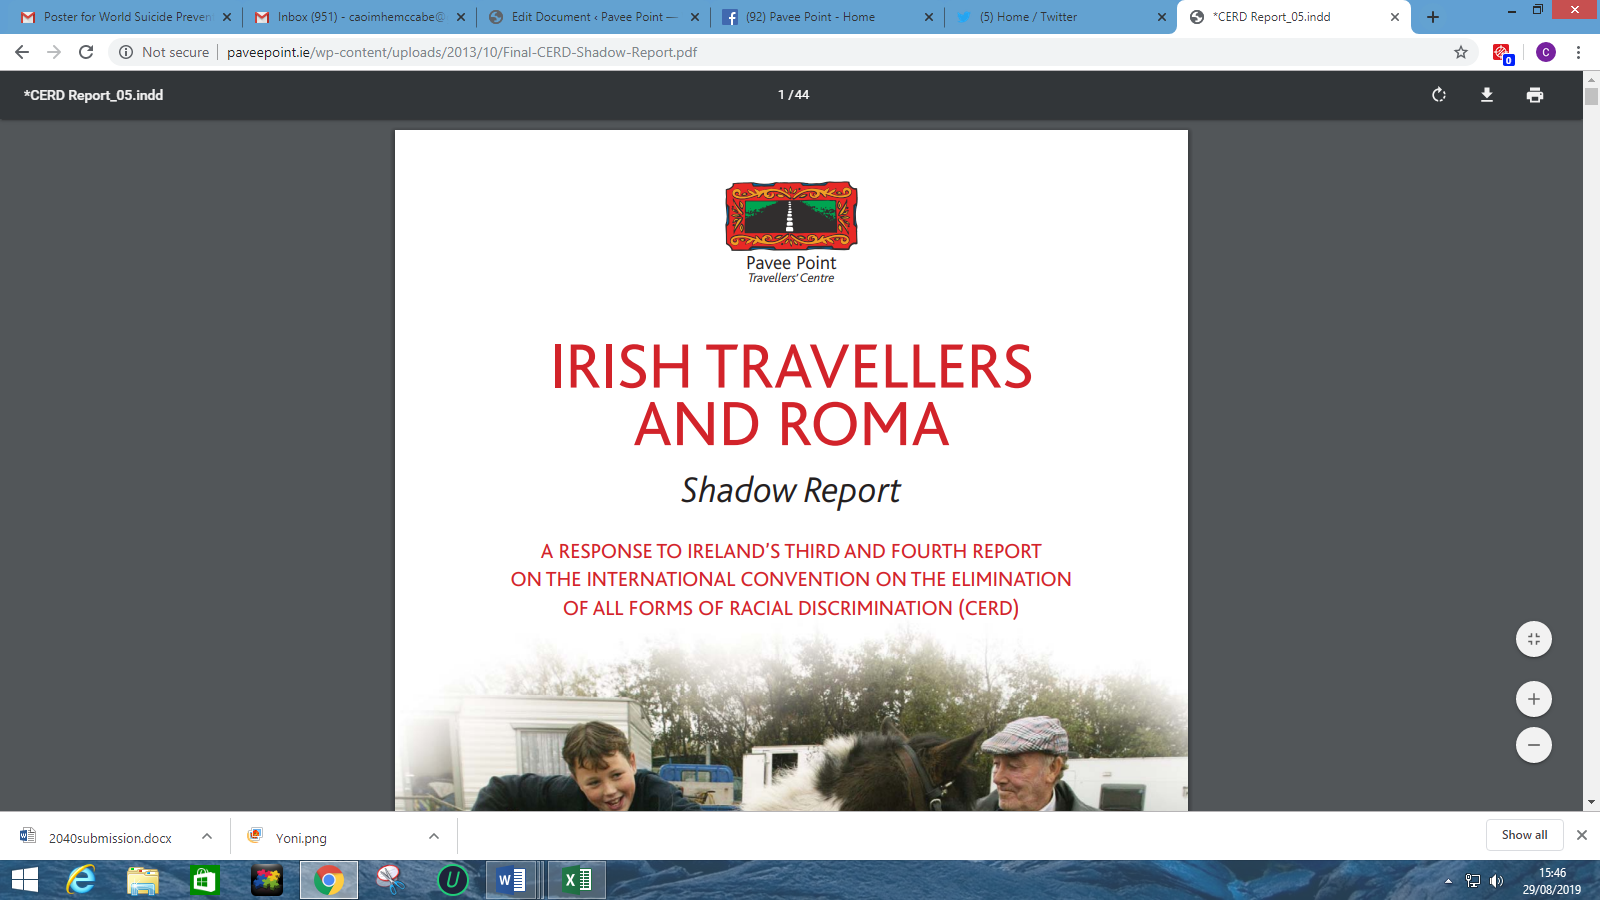 Irish Travellers and Roma: Convention on the Elimination of All Forms of Racial Discrimination Shadow Report